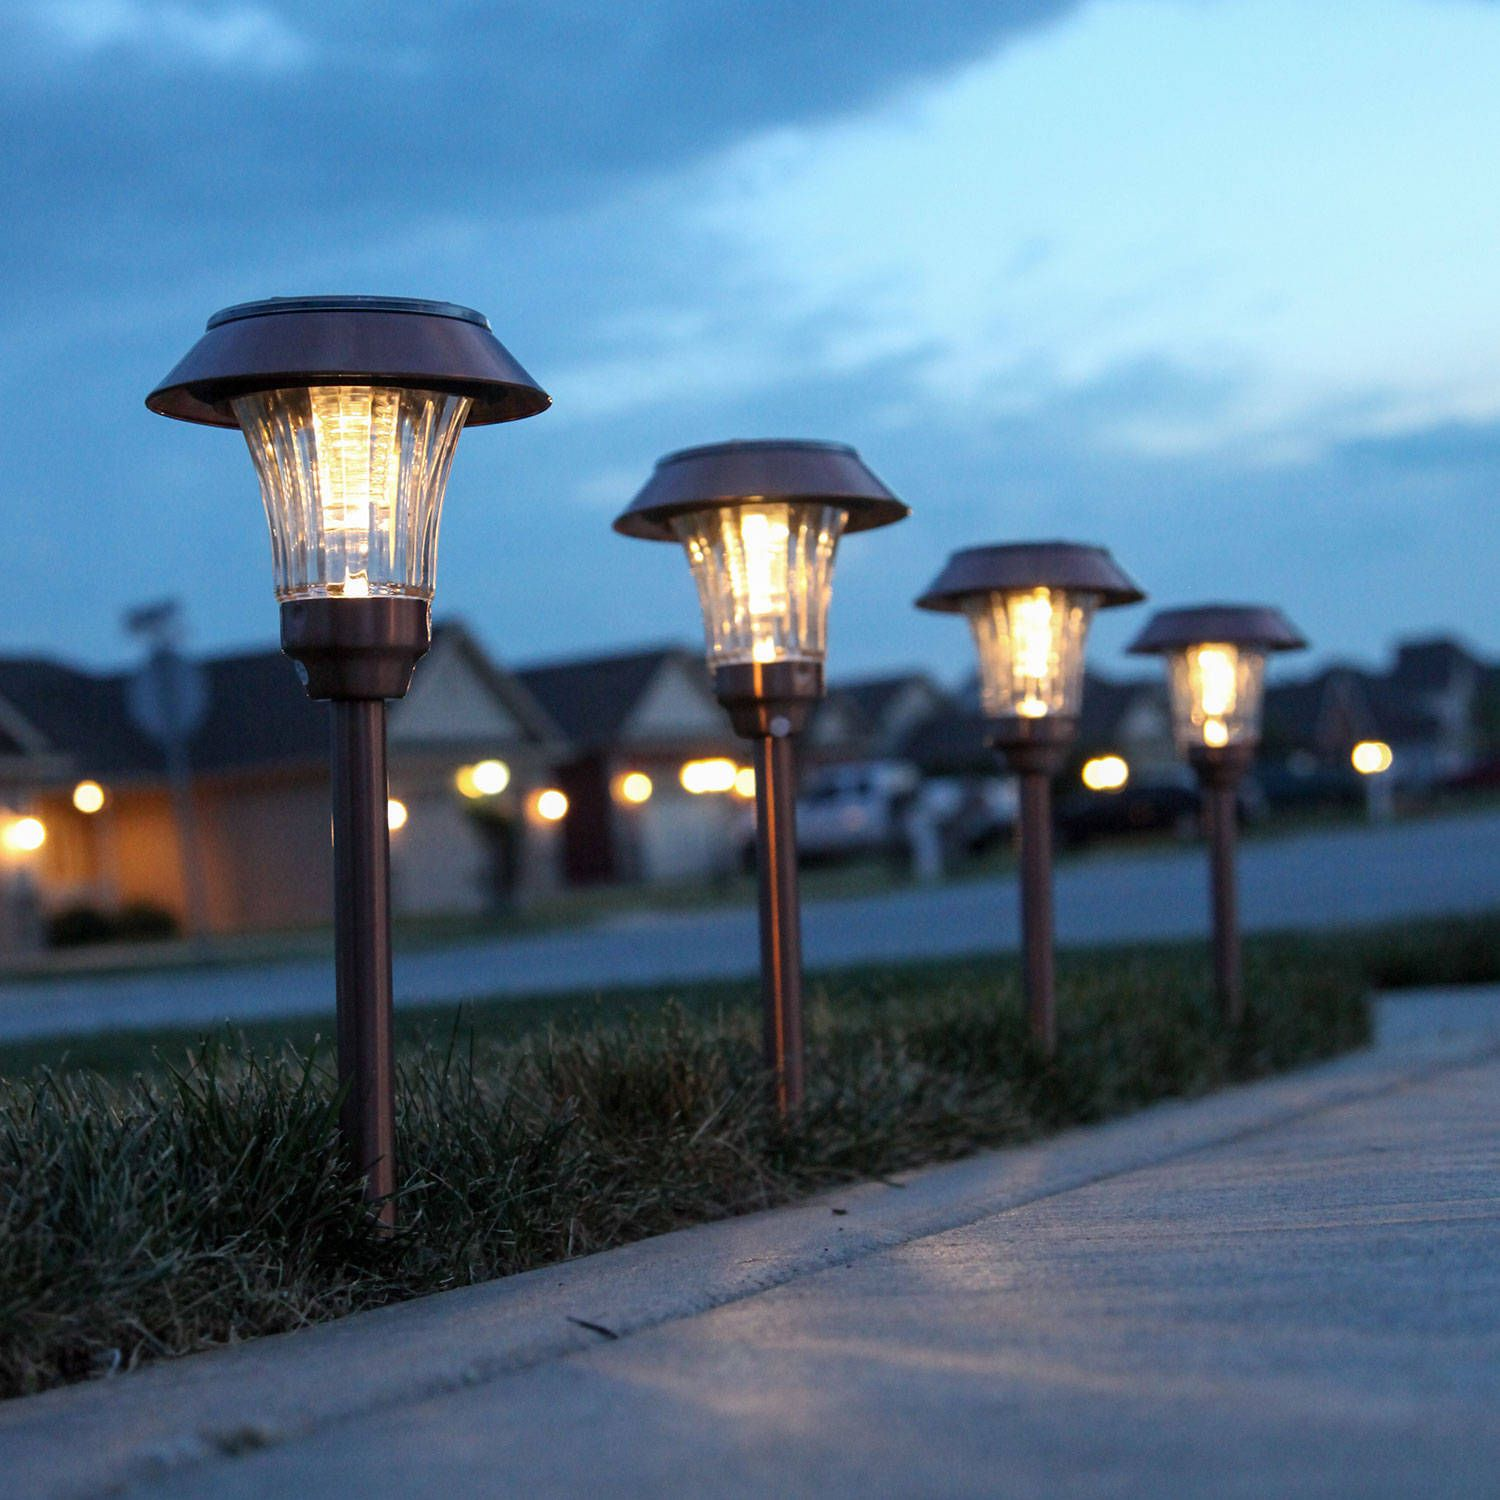 Sulis Copper Solar Path Lights Set Of 4 Solar Path Lights Outdoor Lighting Kit Landscape Lighting